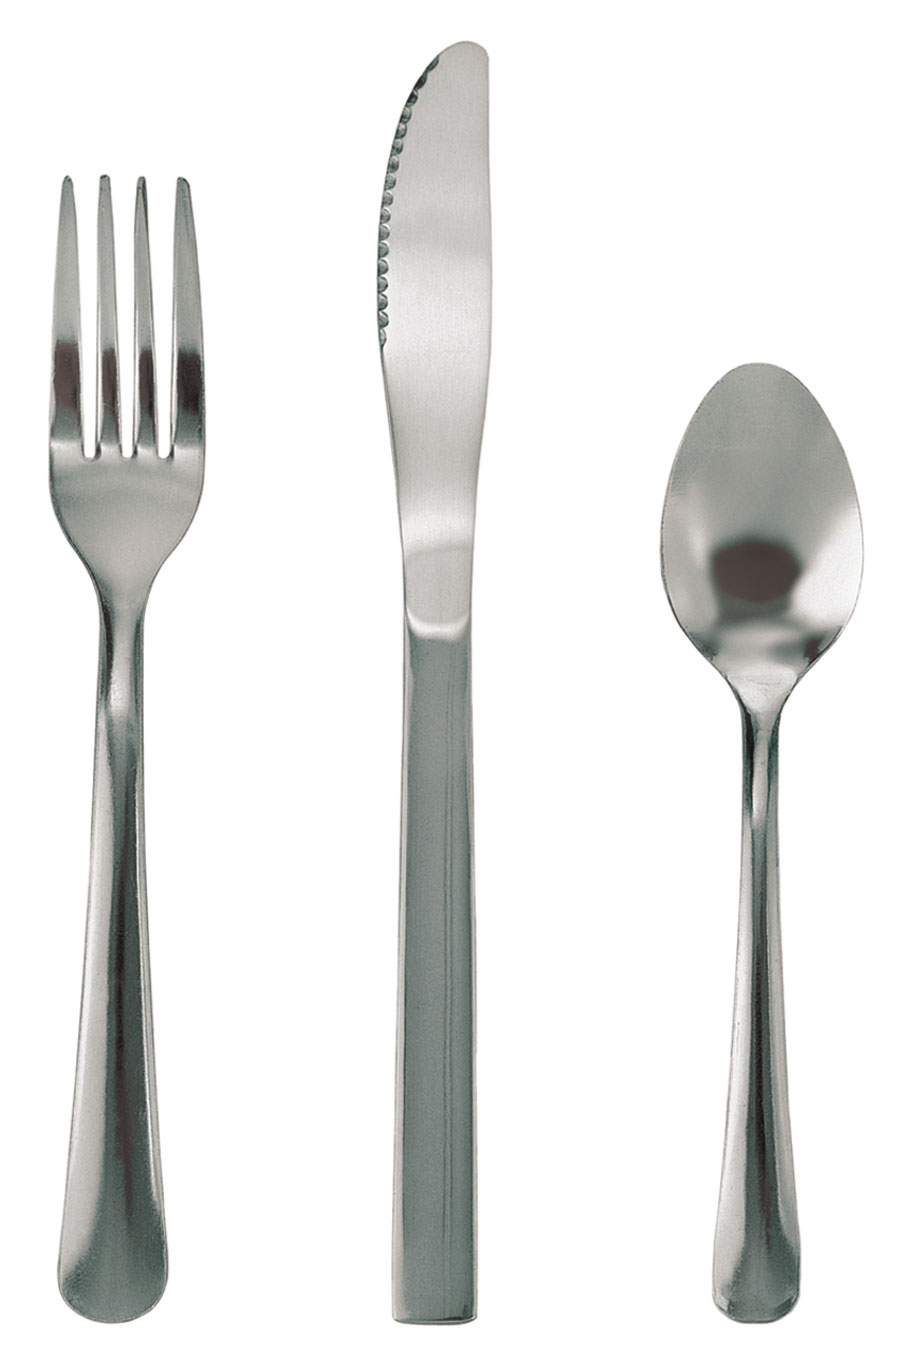 Update International WH-51 Windsor Heavyweight Teaspoon